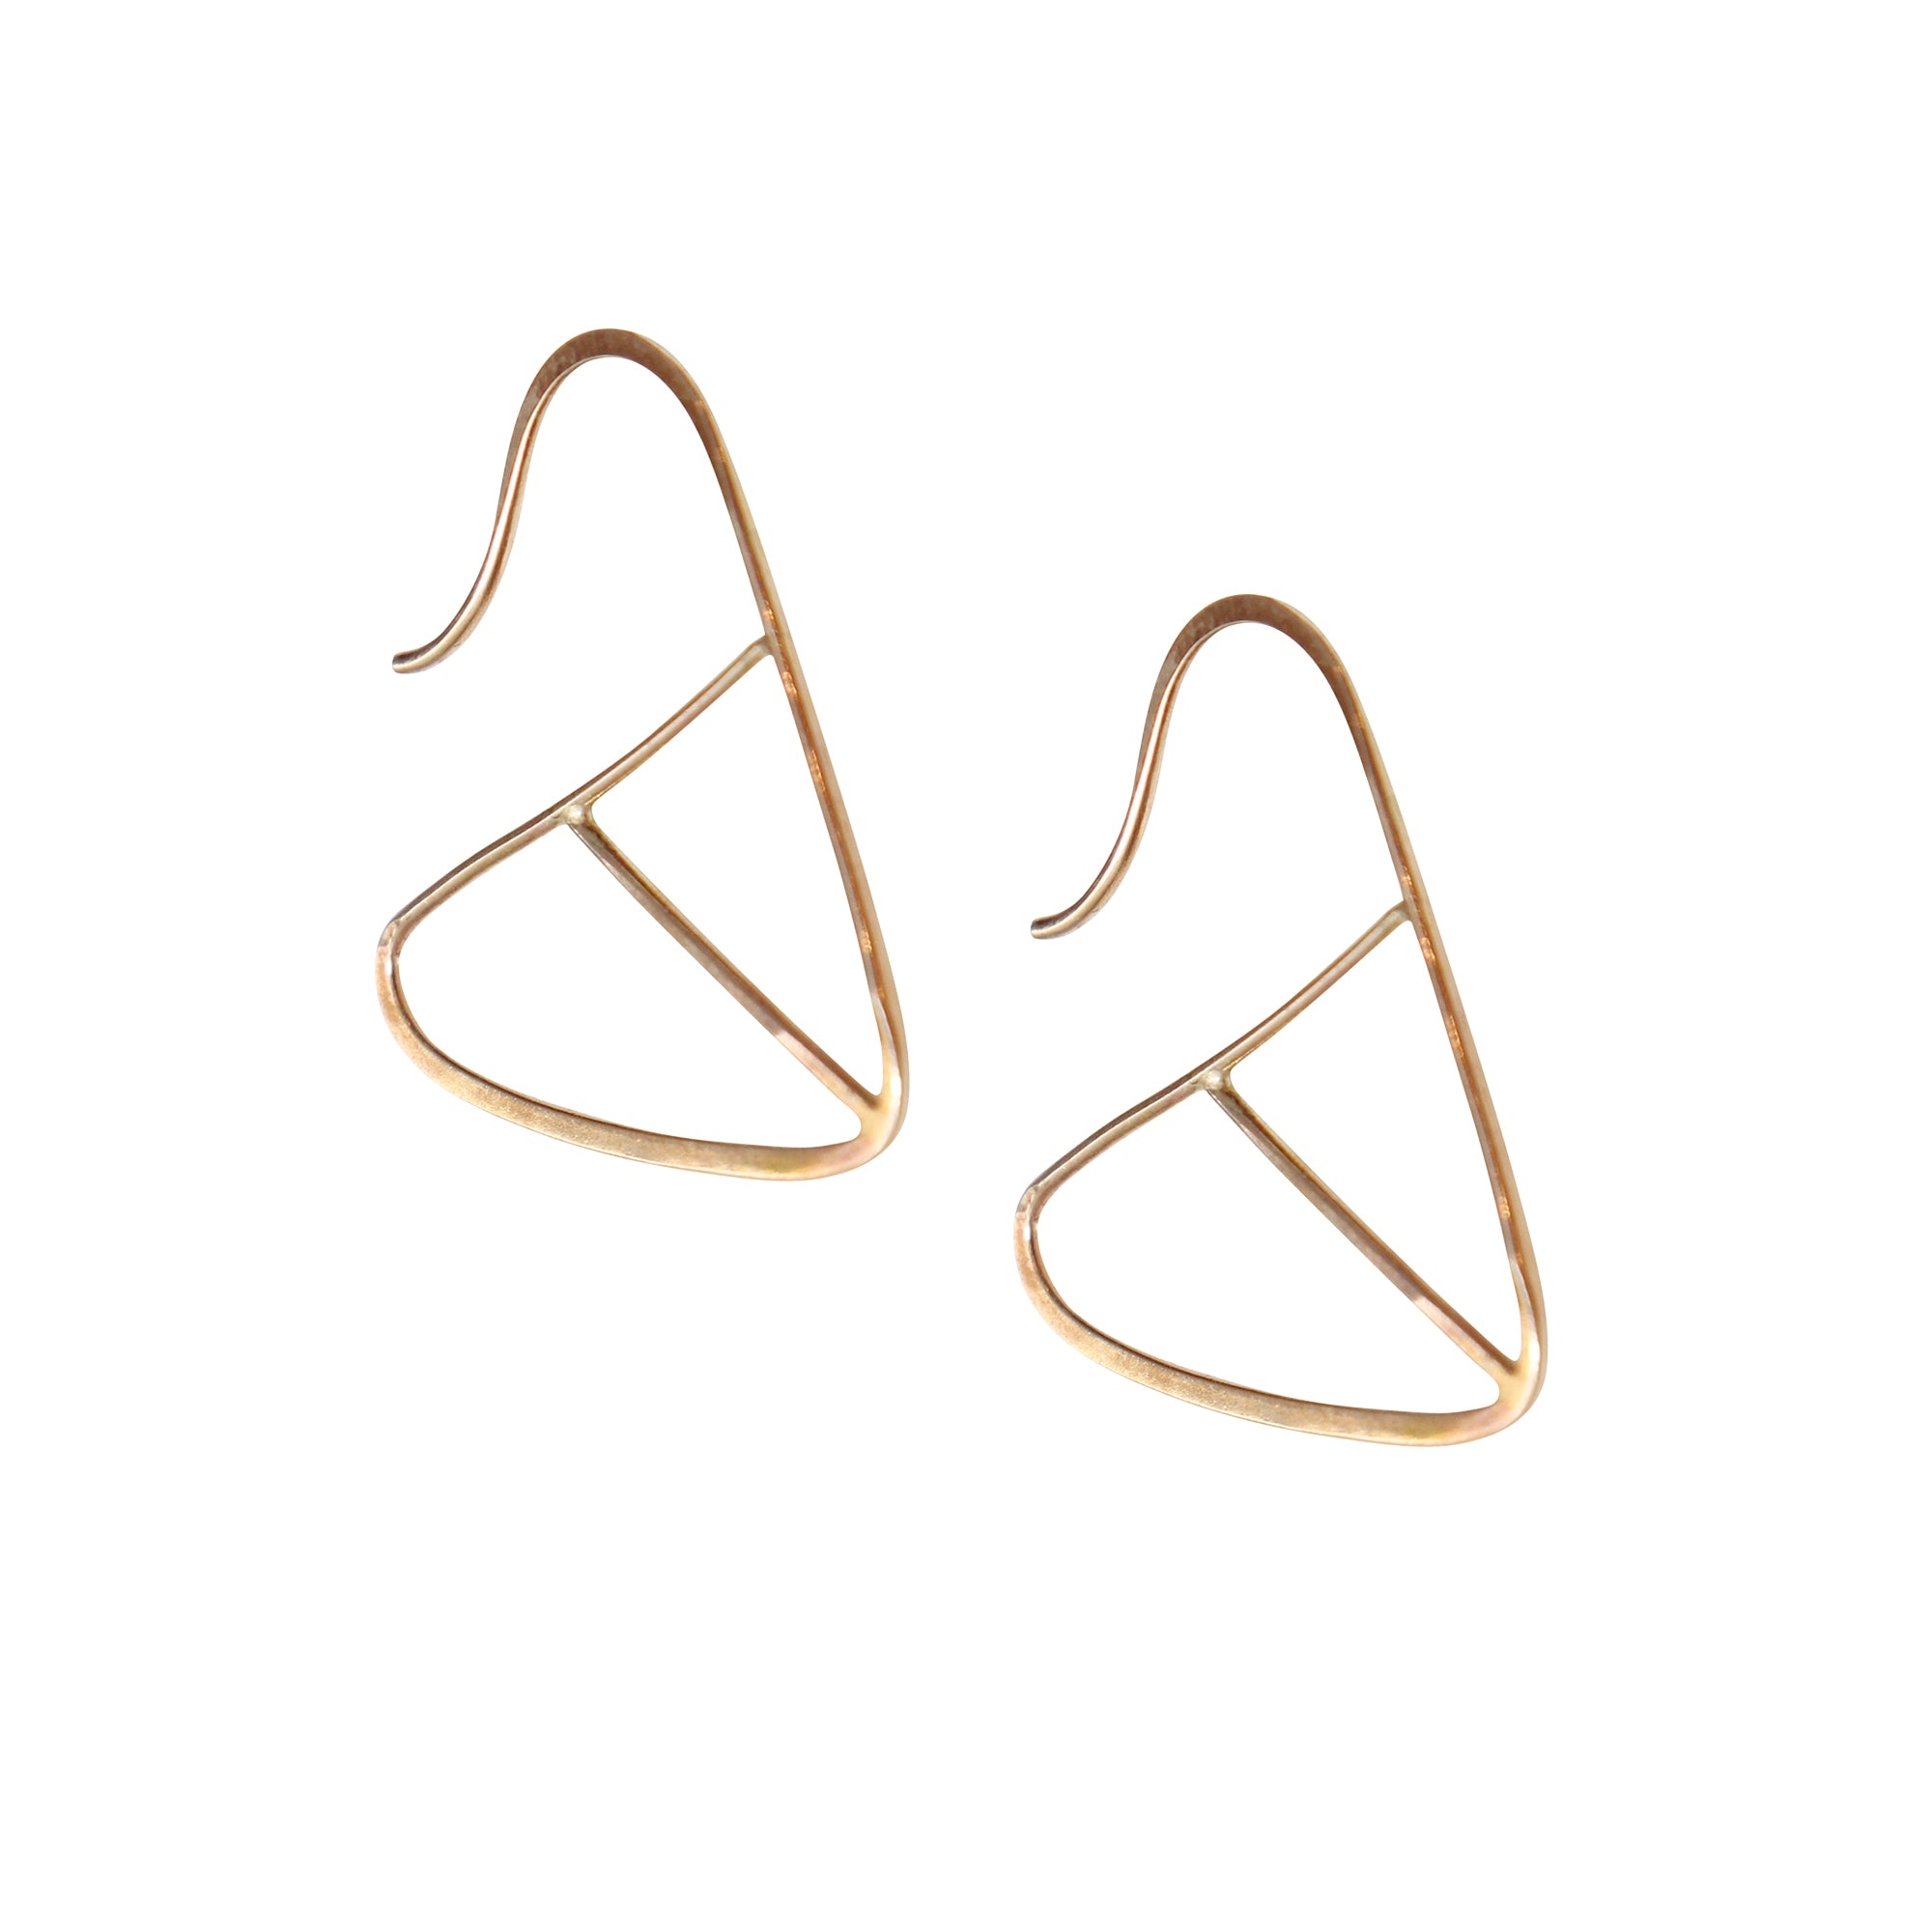 Gold Geometric Triangle Earrings by Melissa Joy Manning for Broken English Jewelry